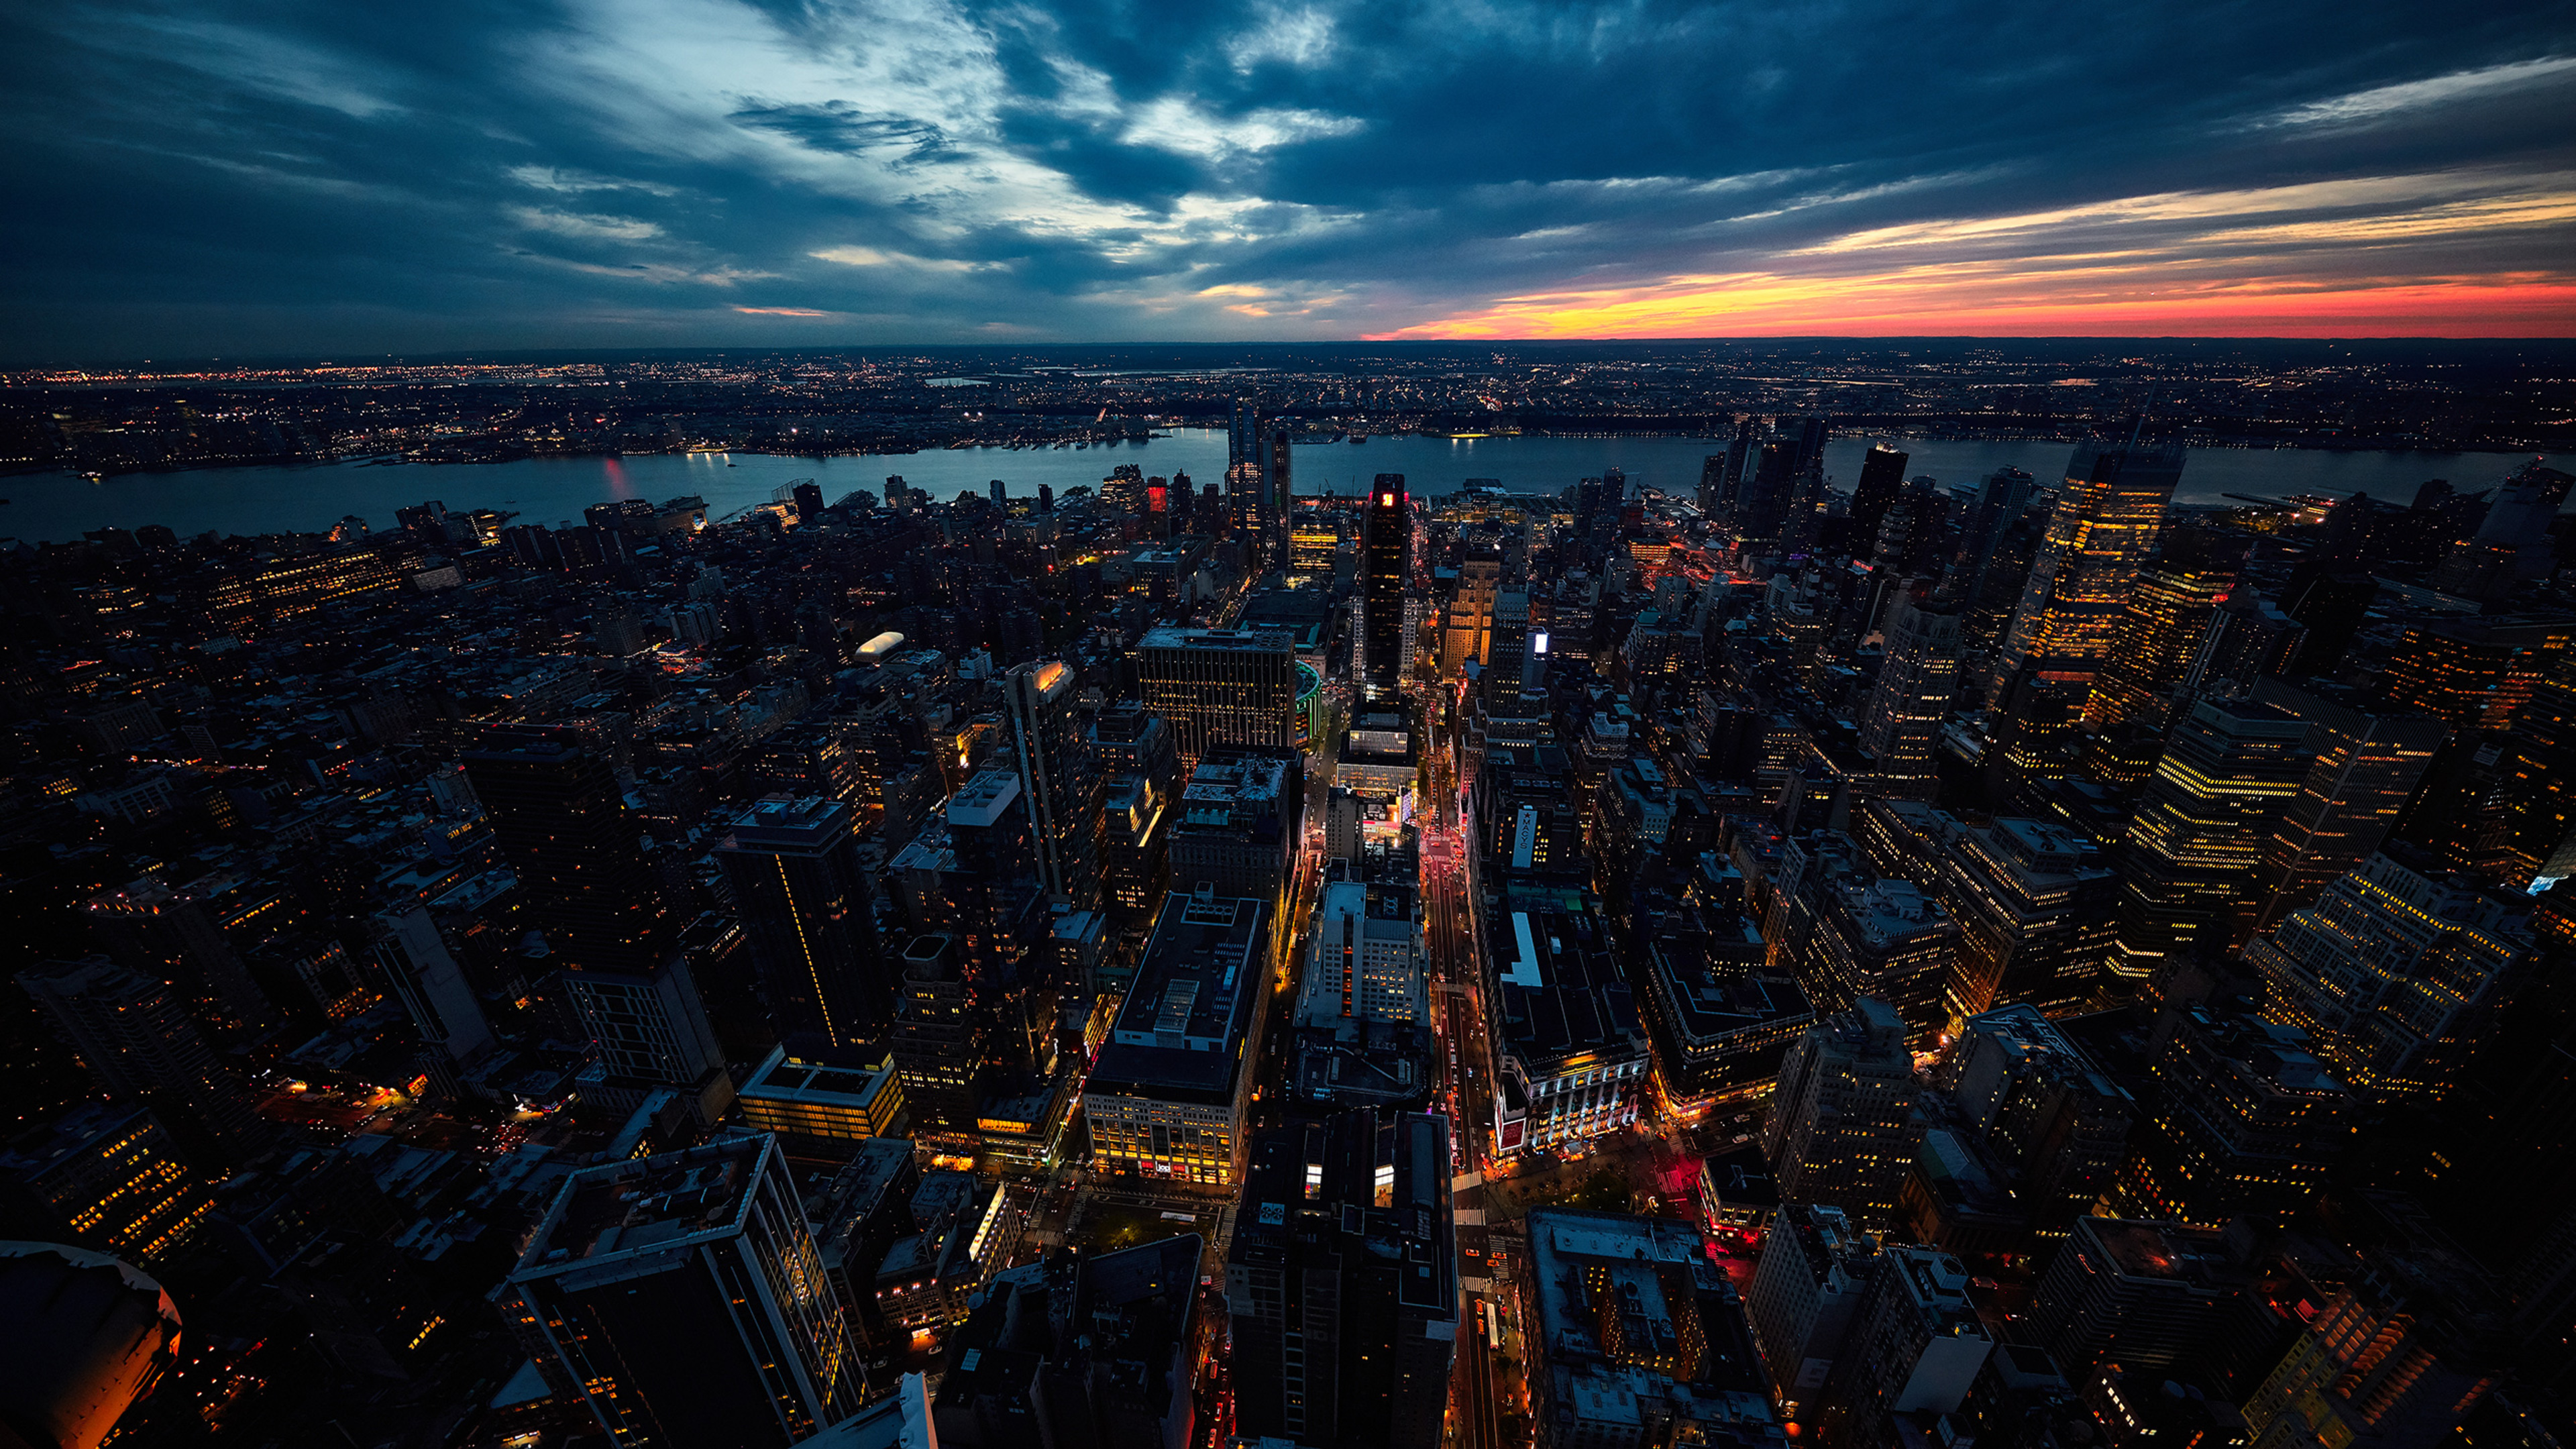 3840x2160 Sunset New York City 4k Hd 4k Wallpapers Images